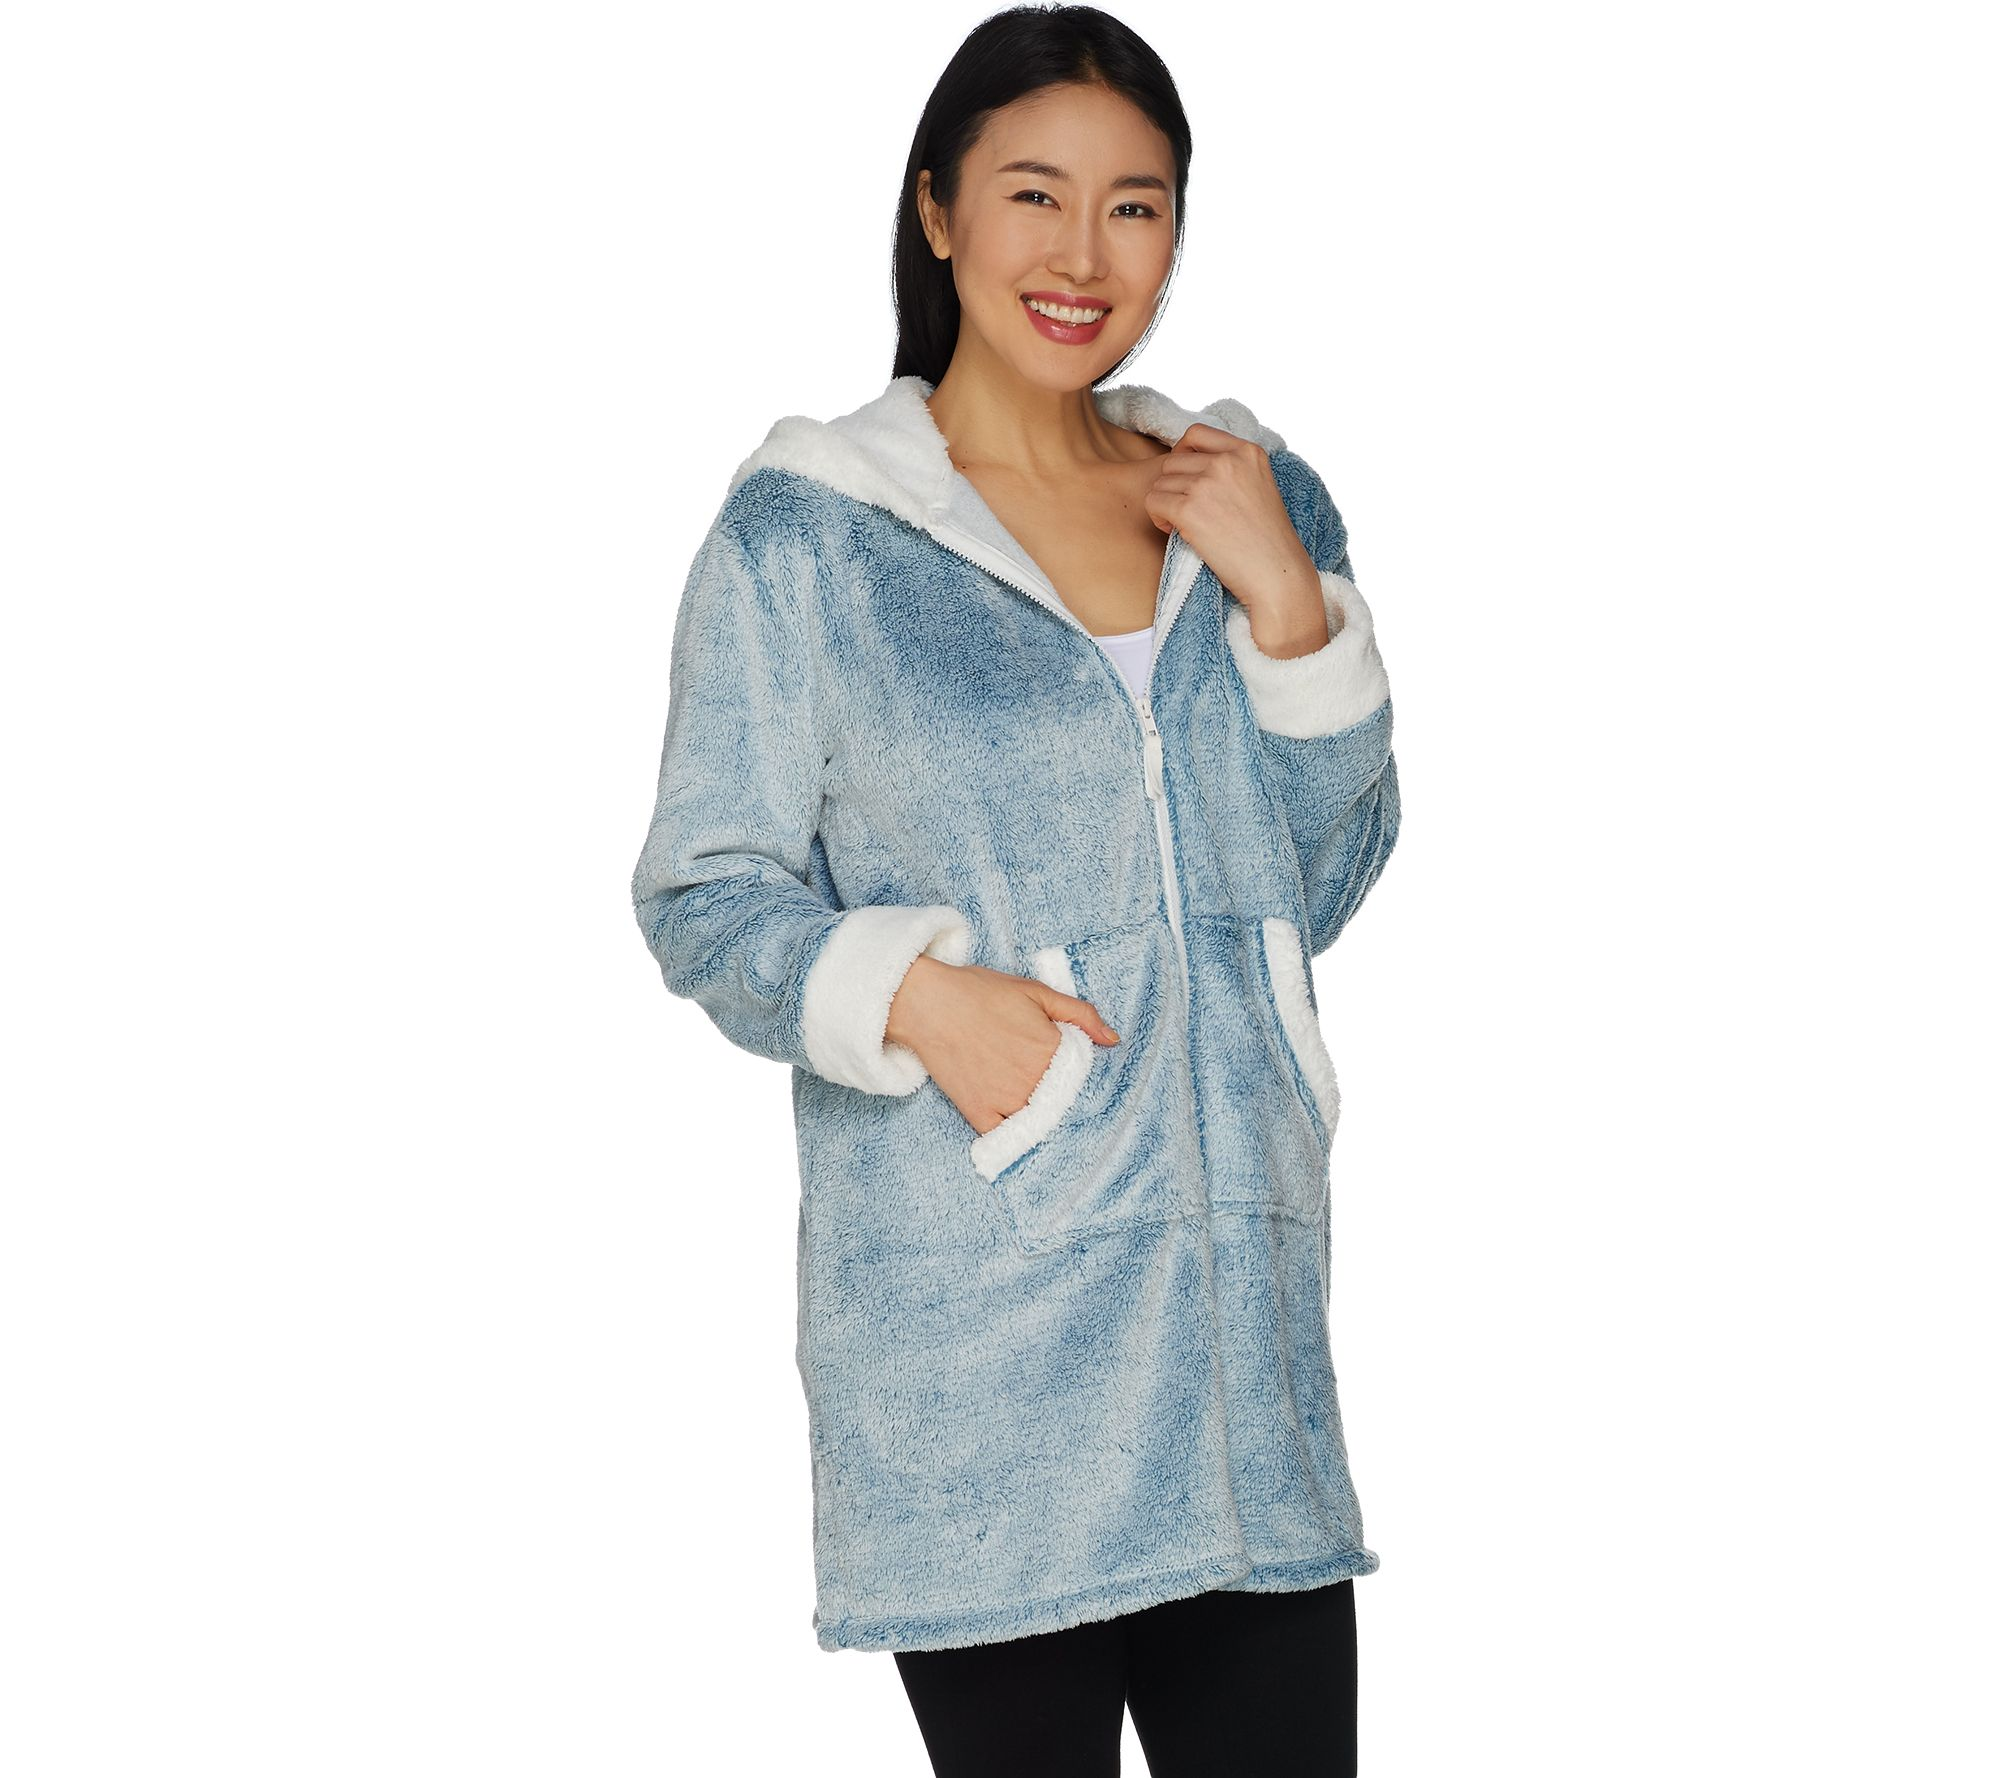 c0c5f2d81c Cuddl Duds Frosted Fleece Zip-Up Robe with Sherpa Trim - Page 1 ...